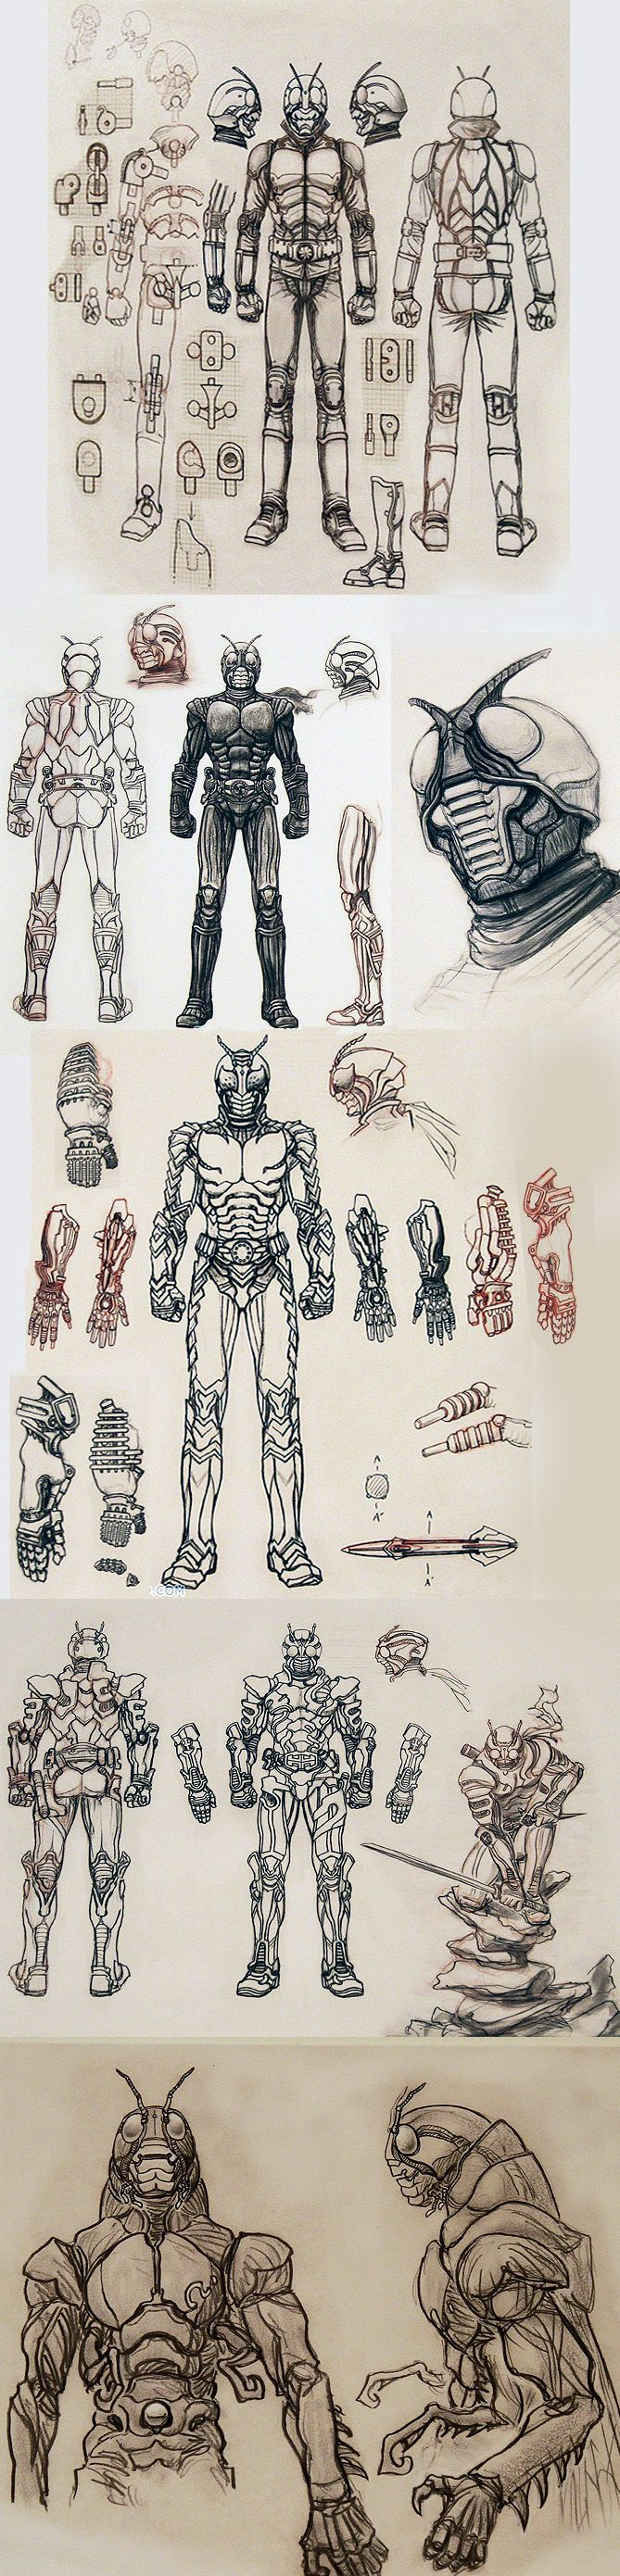 best awesome robots images on pinterest